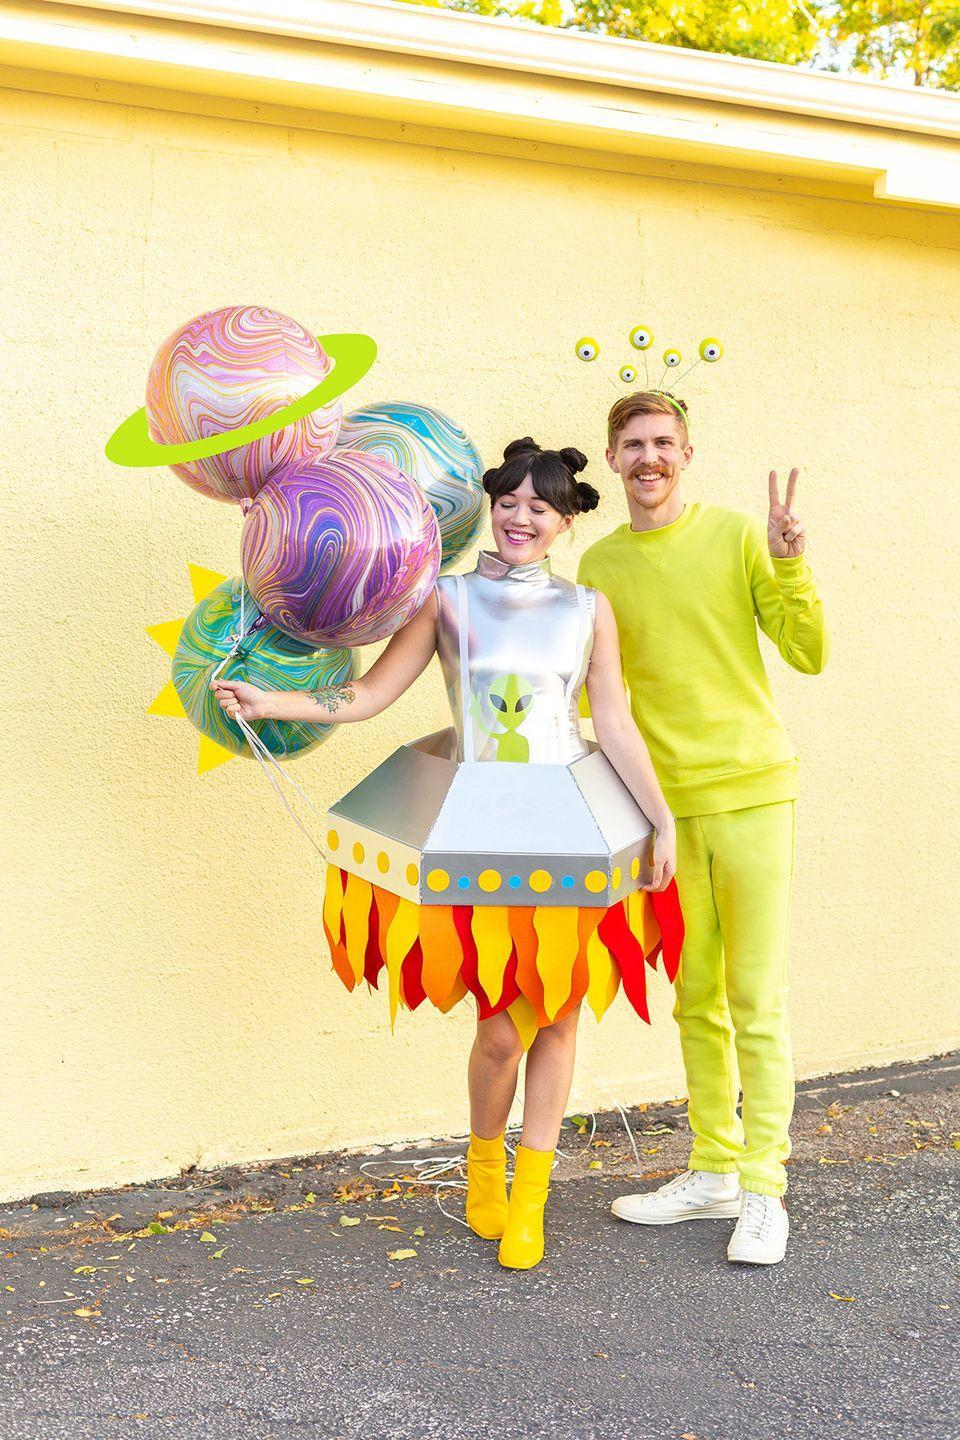 "<p>To make the alien portion of this costume, all you need is a neon sweatsuit and a matching alien headband. Extra points for carrying a bouquet of planet balloons.</p><p><em><a href=""http://www.awwsam.com/2019/10/ufo-and-alien-couples-costume.html"" rel=""nofollow noopener"" target=""_blank"" data-ylk=""slk:Get the tutorial at Aww Sam »"" class=""link rapid-noclick-resp"">Get the tutorial at Aww Sam »</a></em></p><p><strong>RELATED: </strong><a href=""https://www.goodhousekeeping.com/holidays/halloween-ideas/g2625/halloween-costumes-for-couples/"" rel=""nofollow noopener"" target=""_blank"" data-ylk=""slk:80 Best Couples Halloween Costumes for Creative Duos"" class=""link rapid-noclick-resp"">80 Best Couples Halloween Costumes for Creative Duos</a></p>"